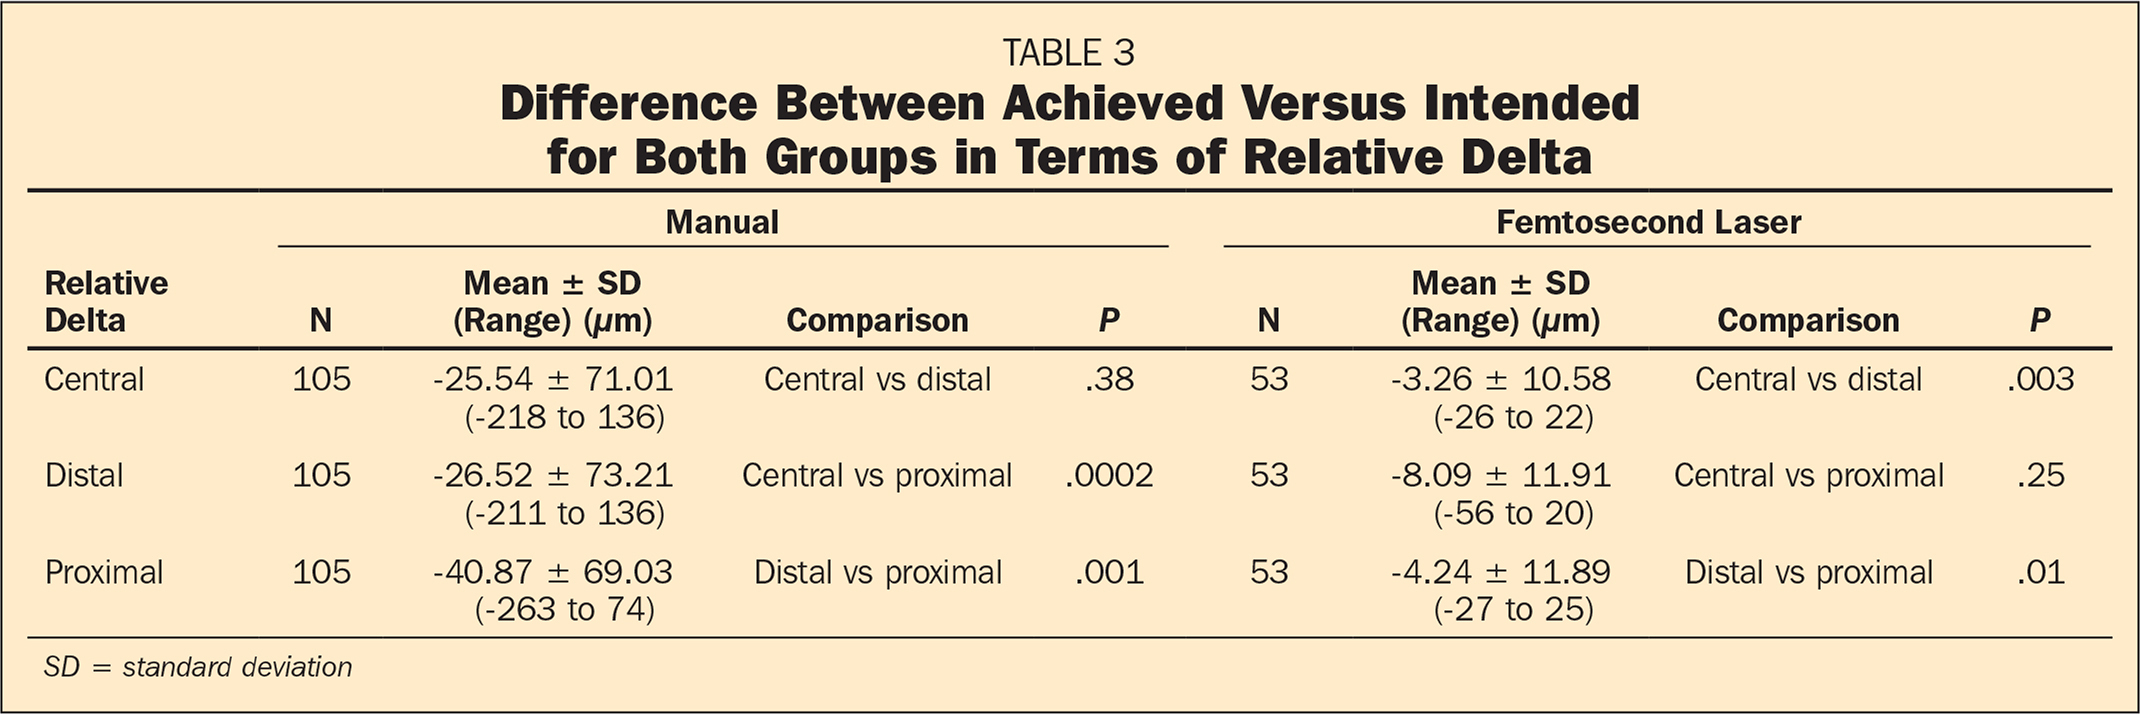 Difference Between Achieved Versus Intended for Both Groups in Terms of Relative Delta